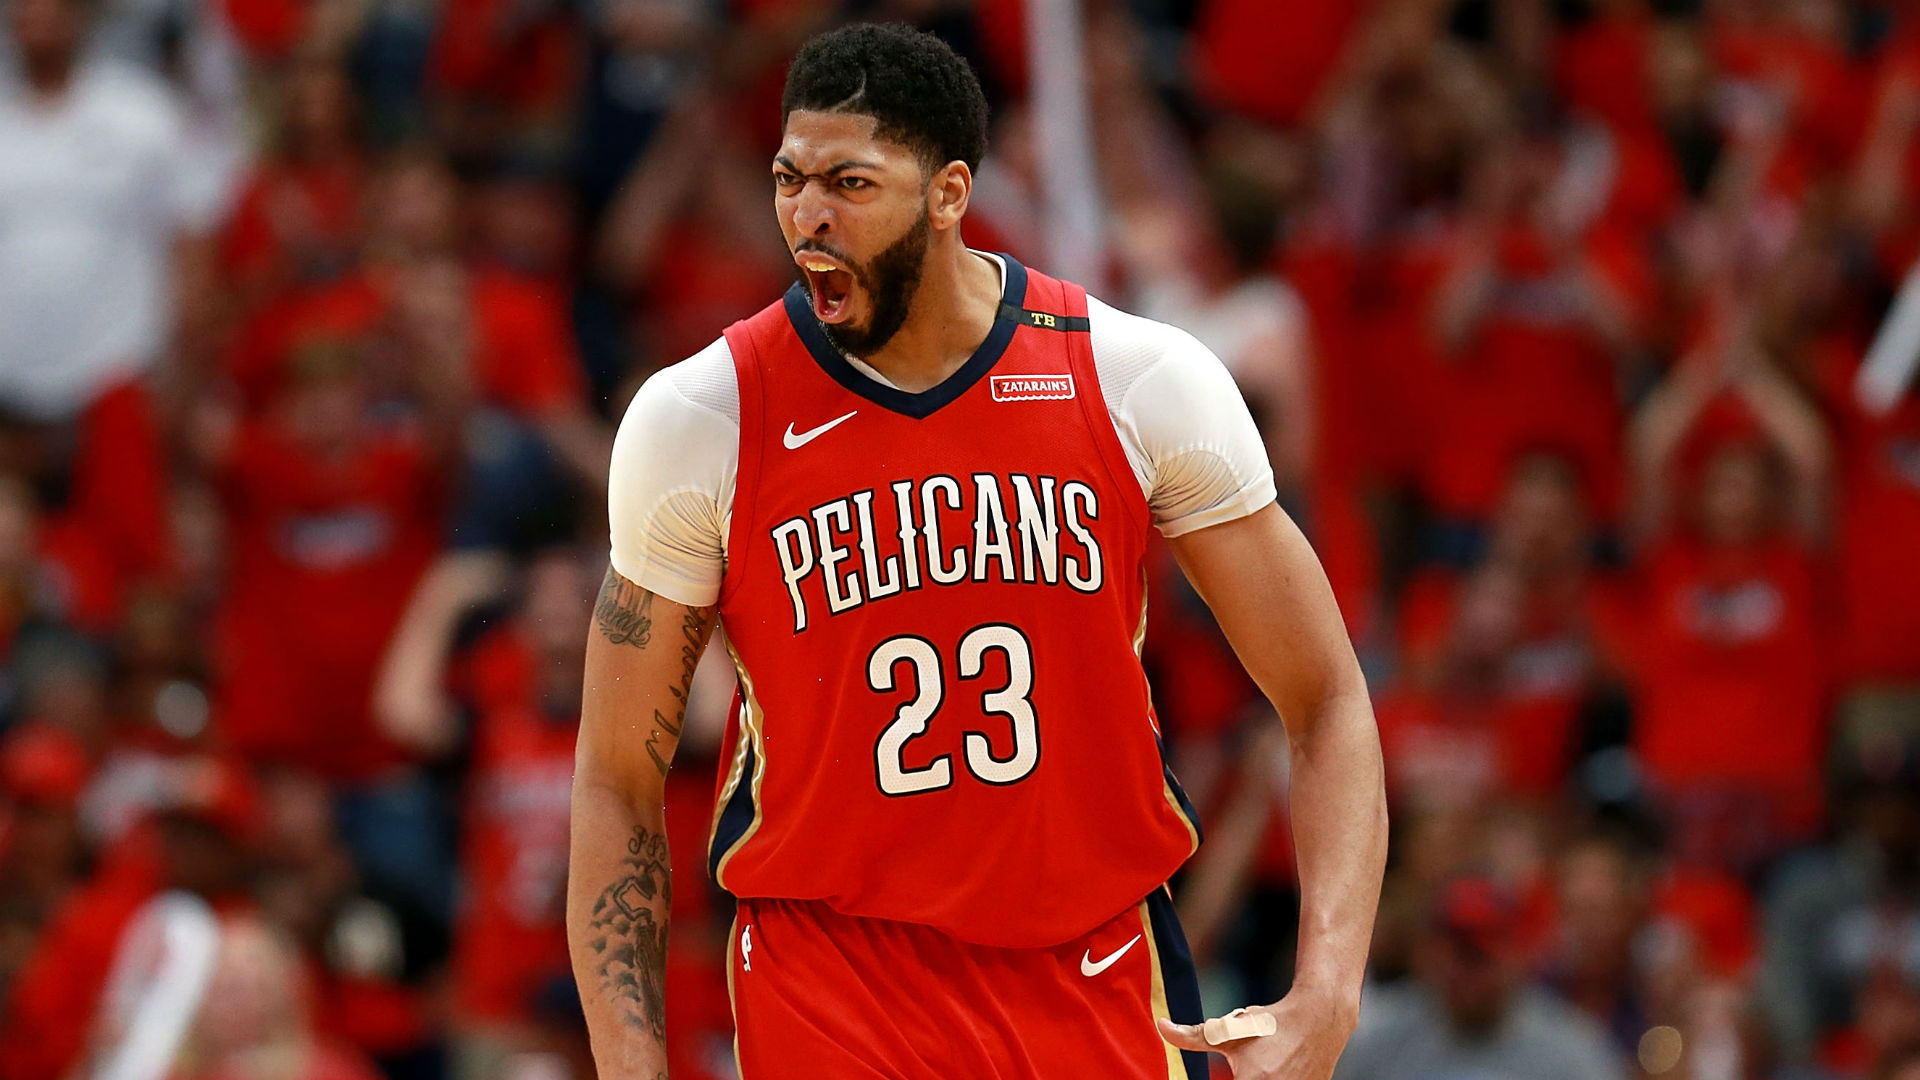 Pelicans void sale of playoff tickets after code leaked to public